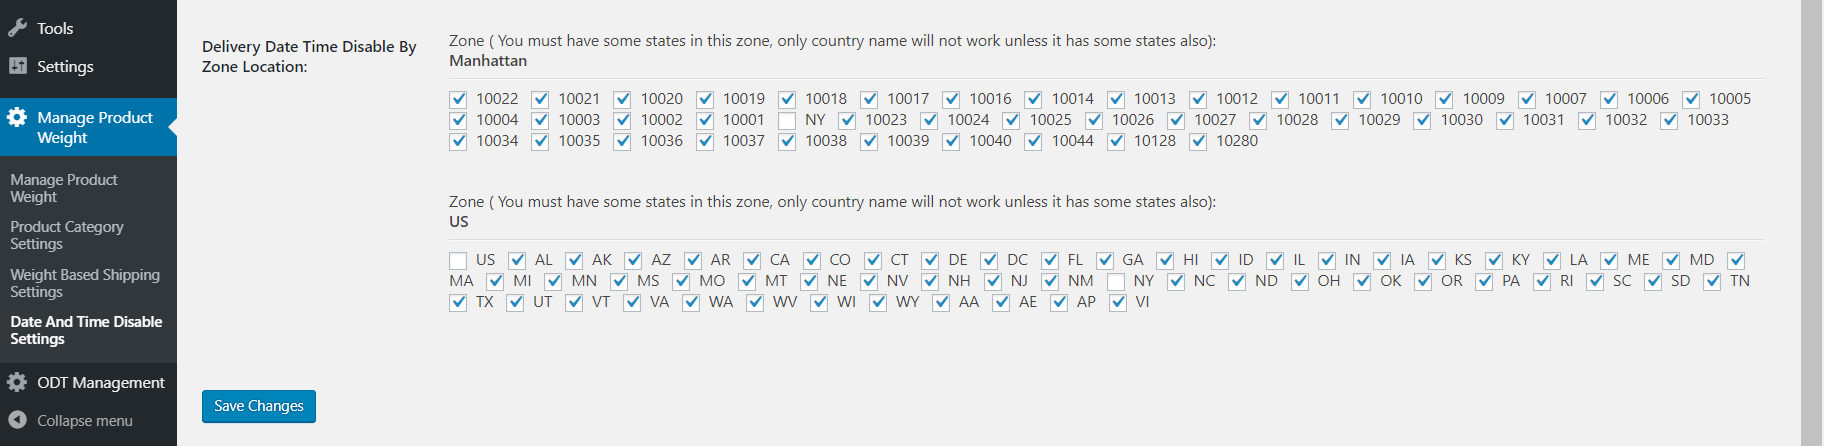 Don't ask for delivery date time in checked the states and zip code areas